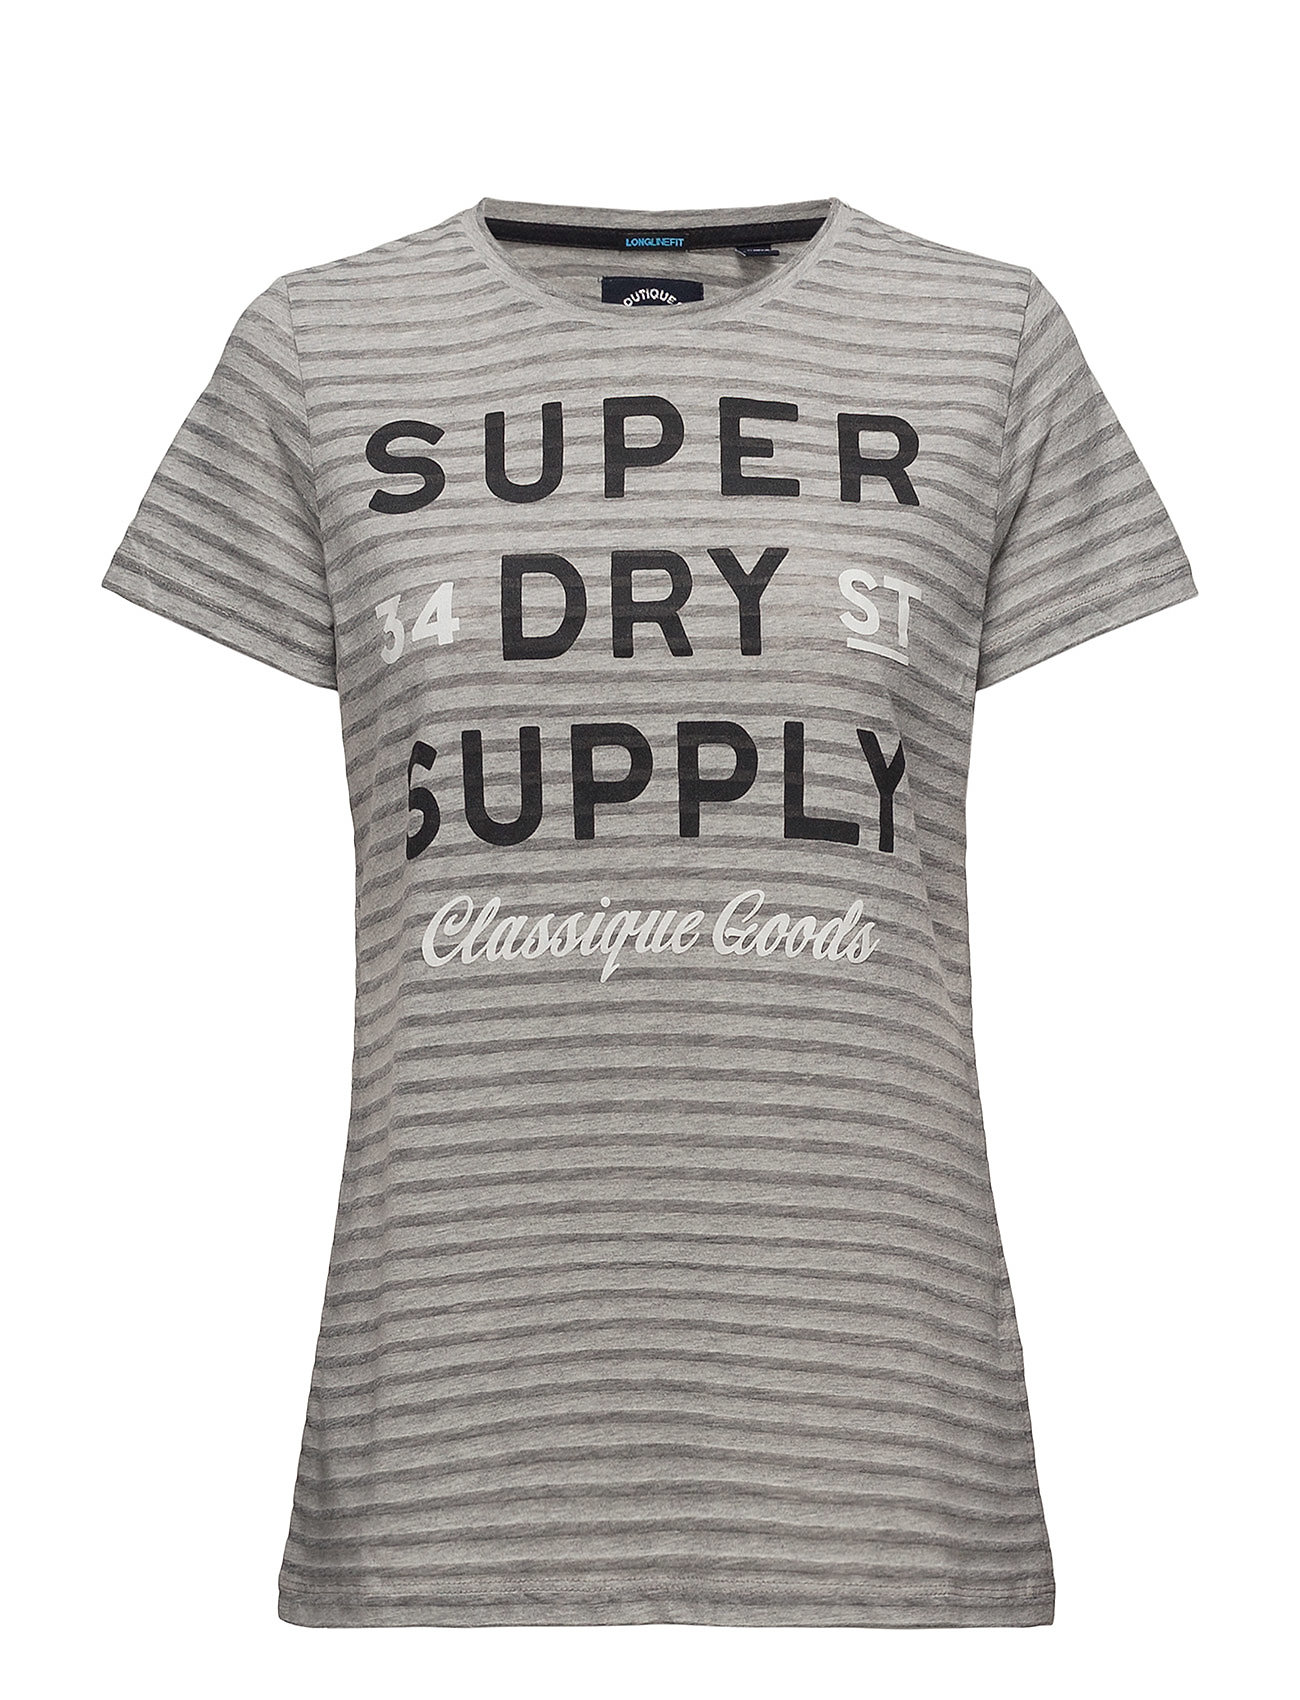 Superdry CLASSIQUE GOODS LONG LINE TEE - OUTRE GREY MARL